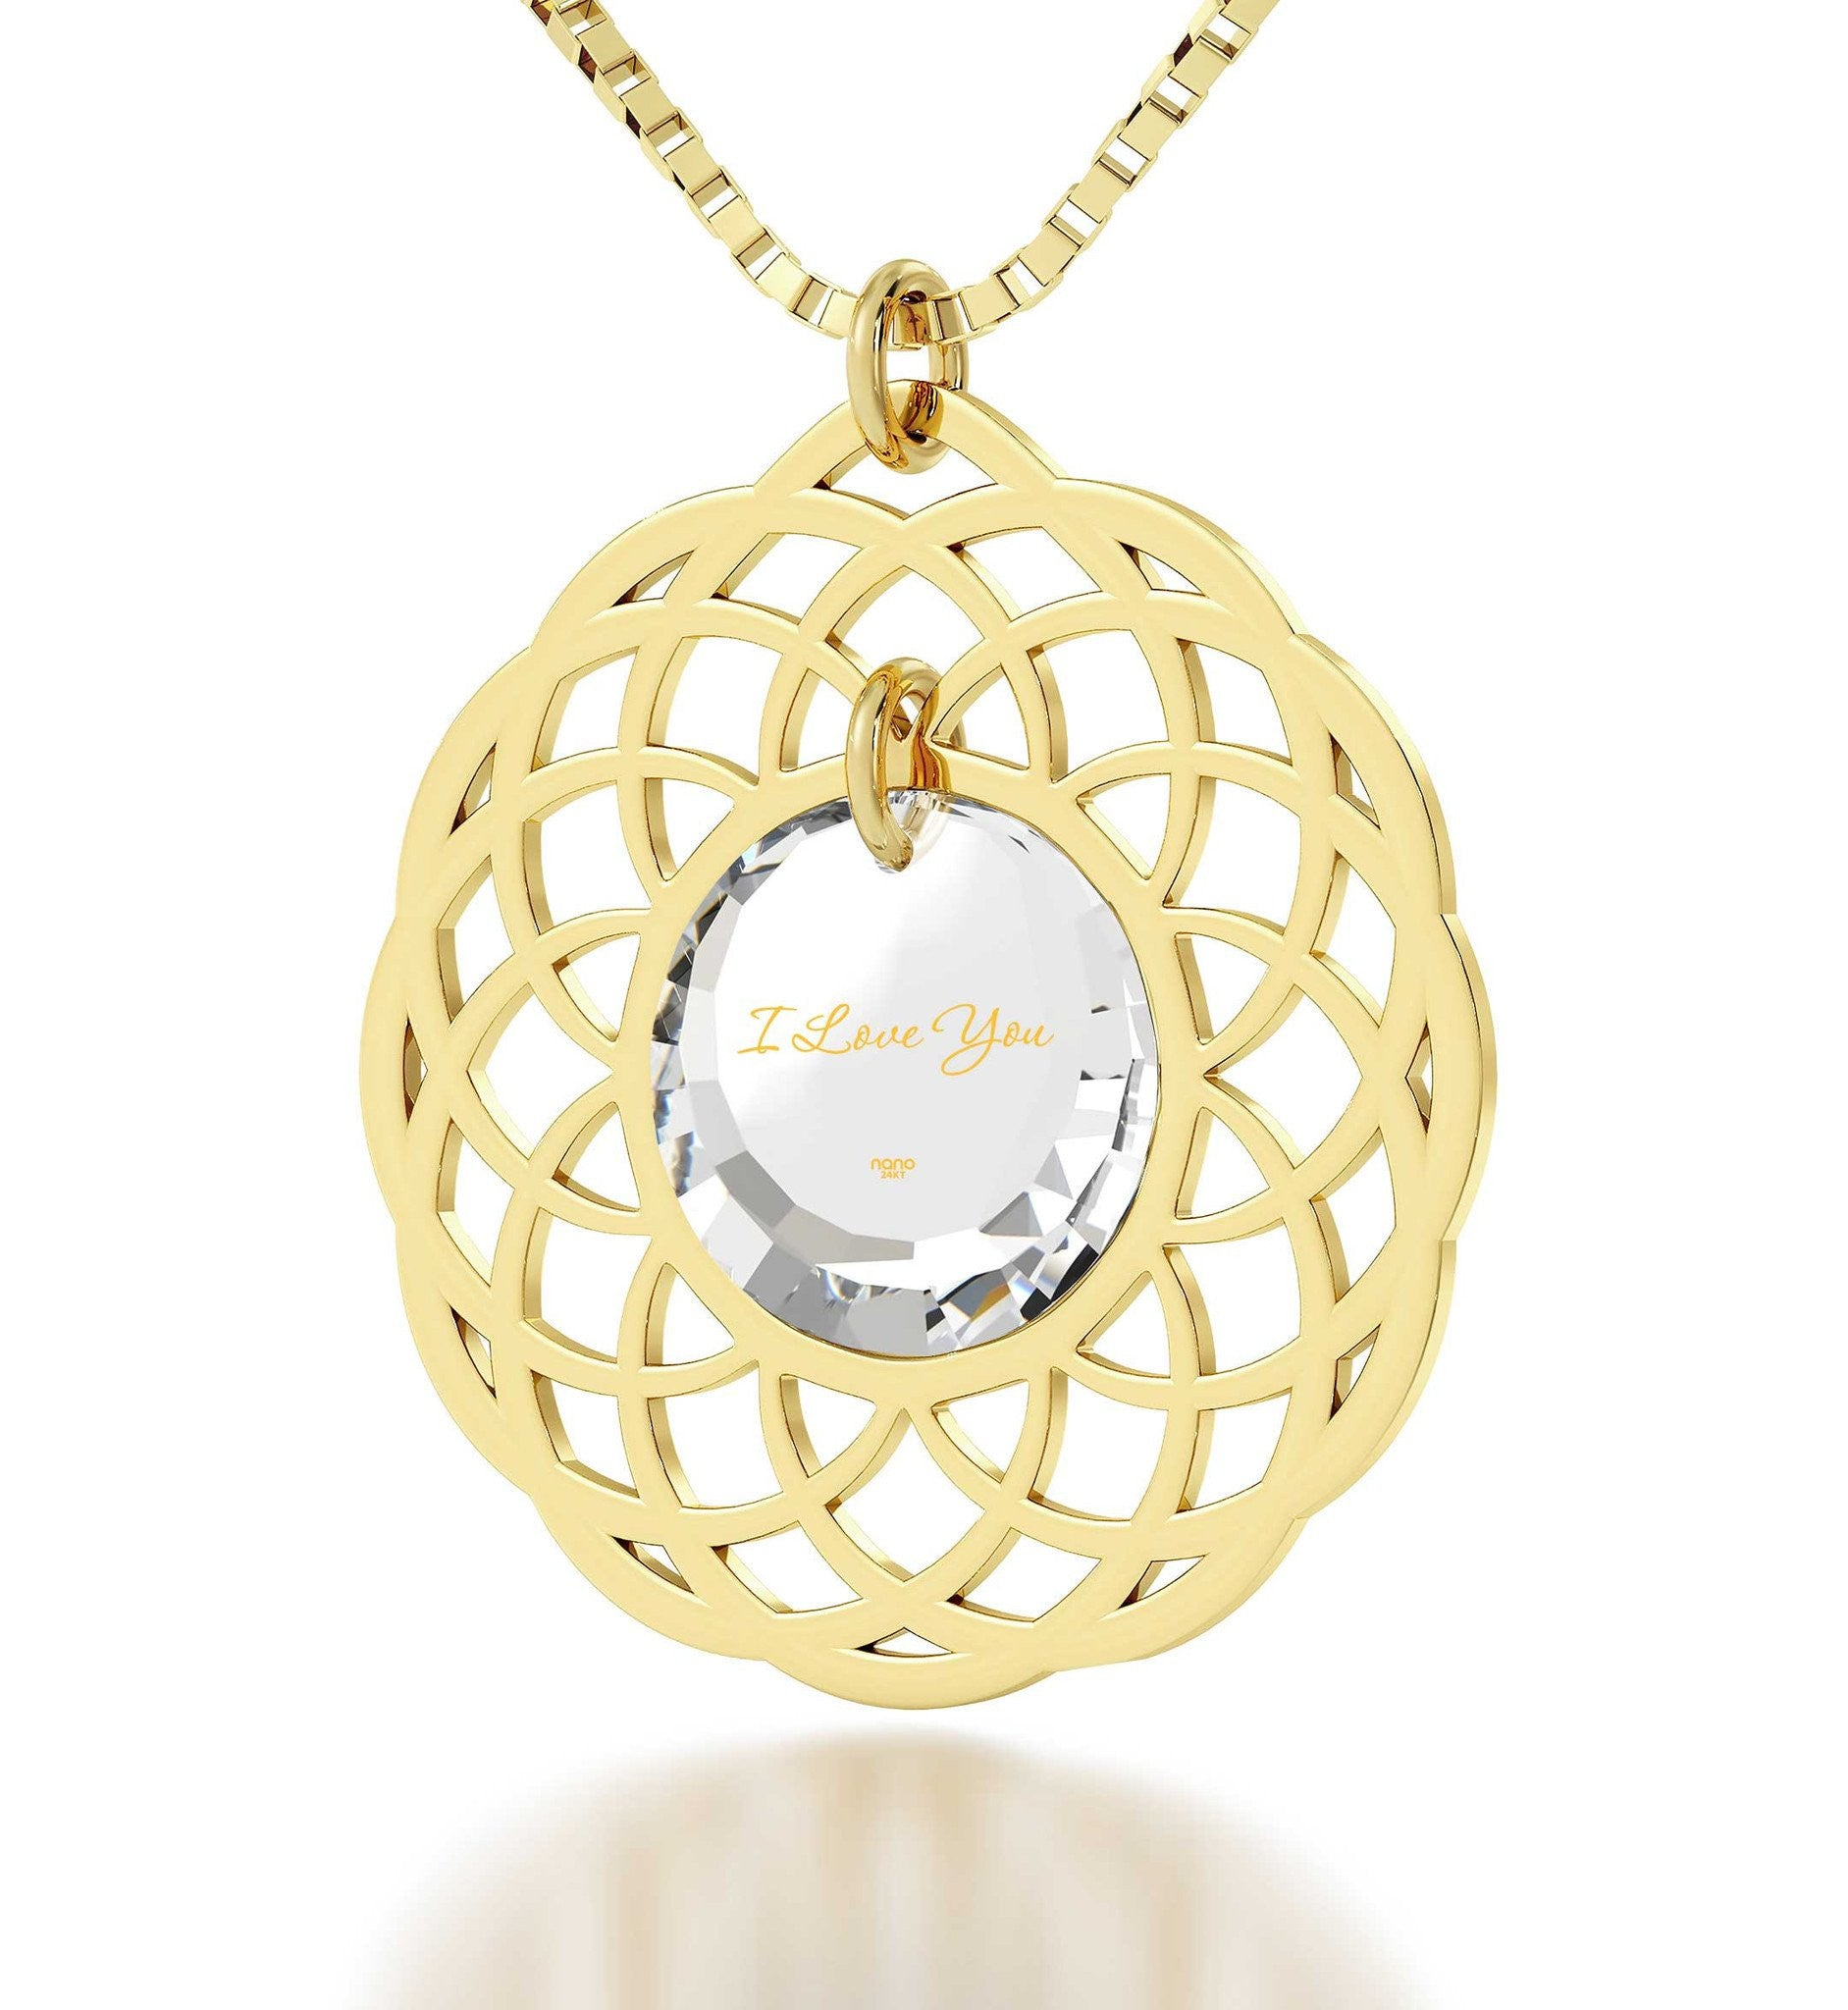 Cute Necklaces for Her, Gold Filled Mandala Frame, Best Presents for Girlfriend, Nano Jewelry